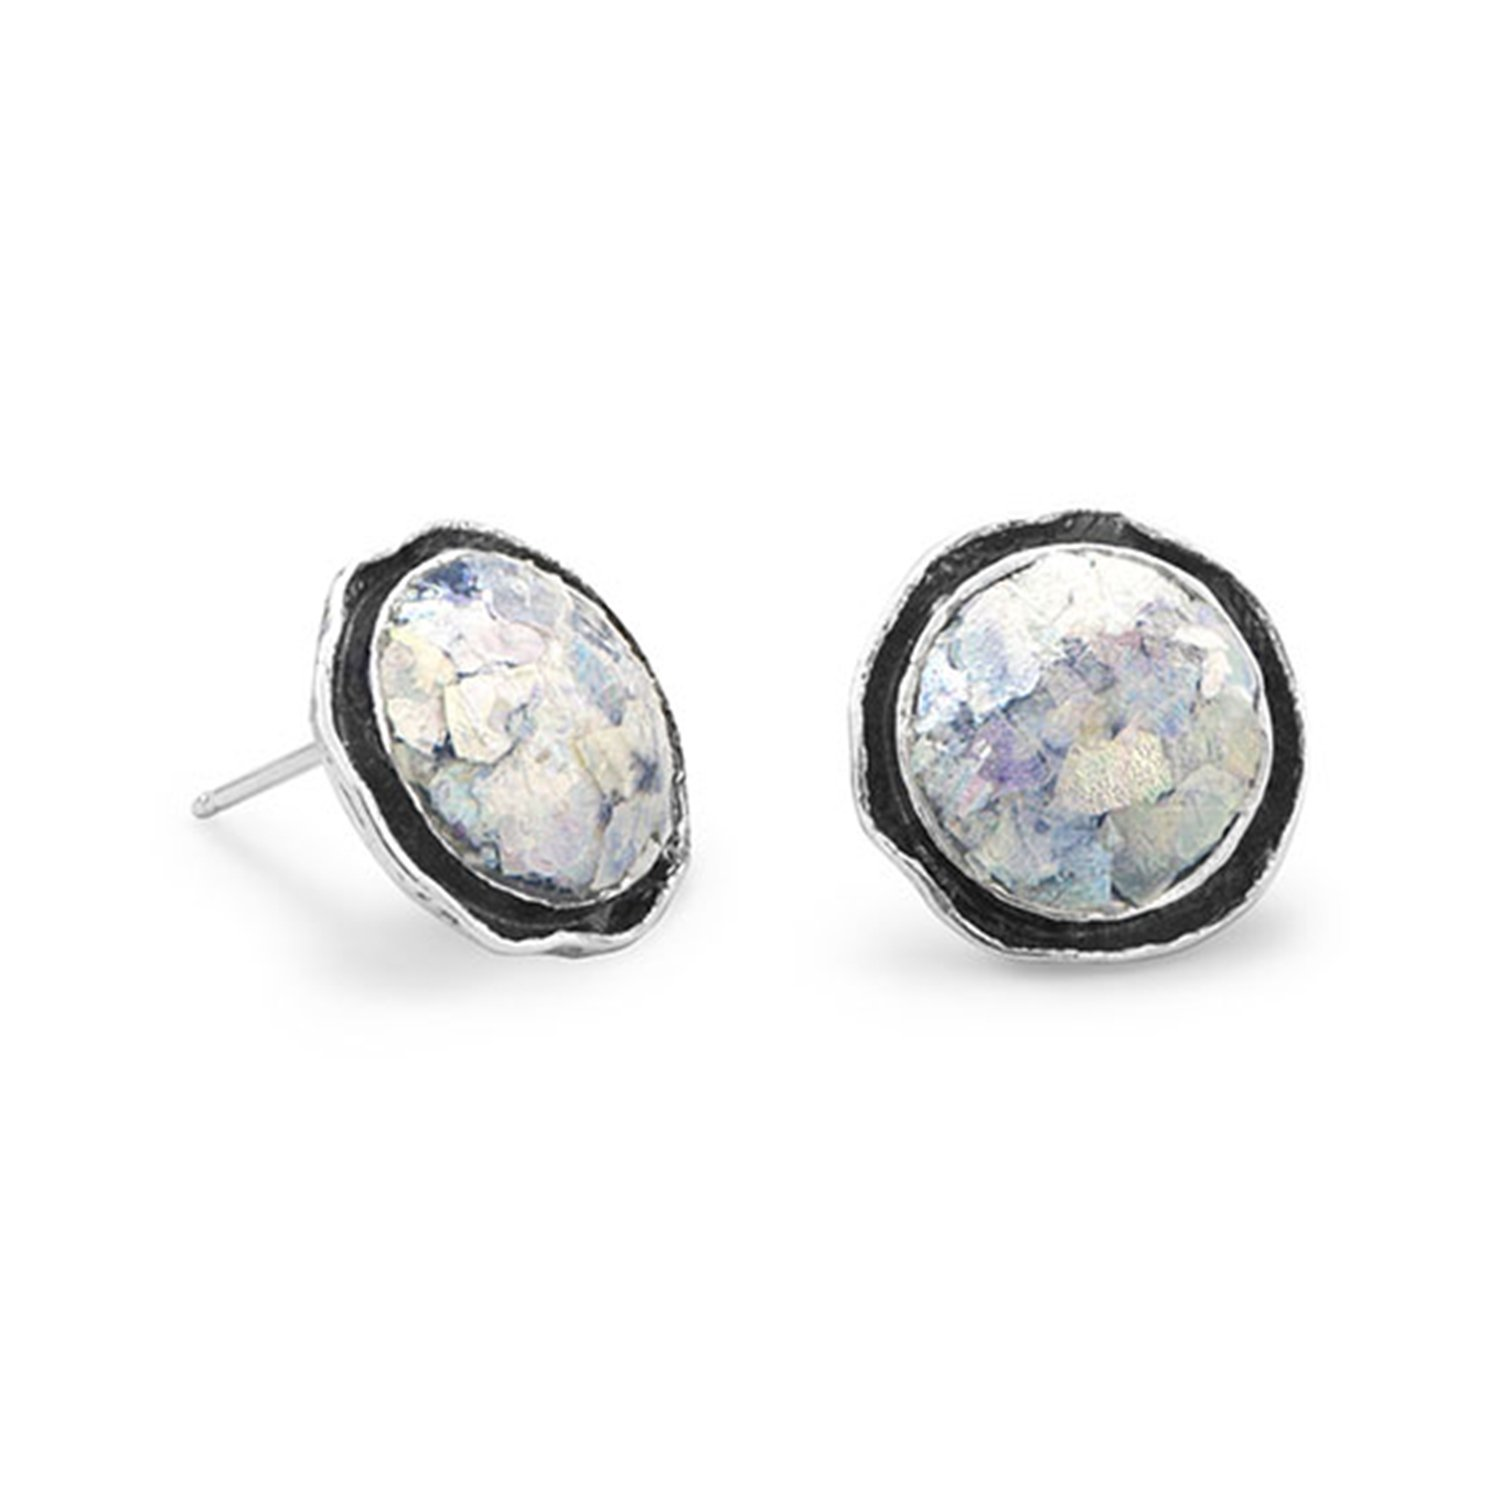 Ancient Roman Glass Stud Earrings Round with Antiqued Edge Sterling Silver